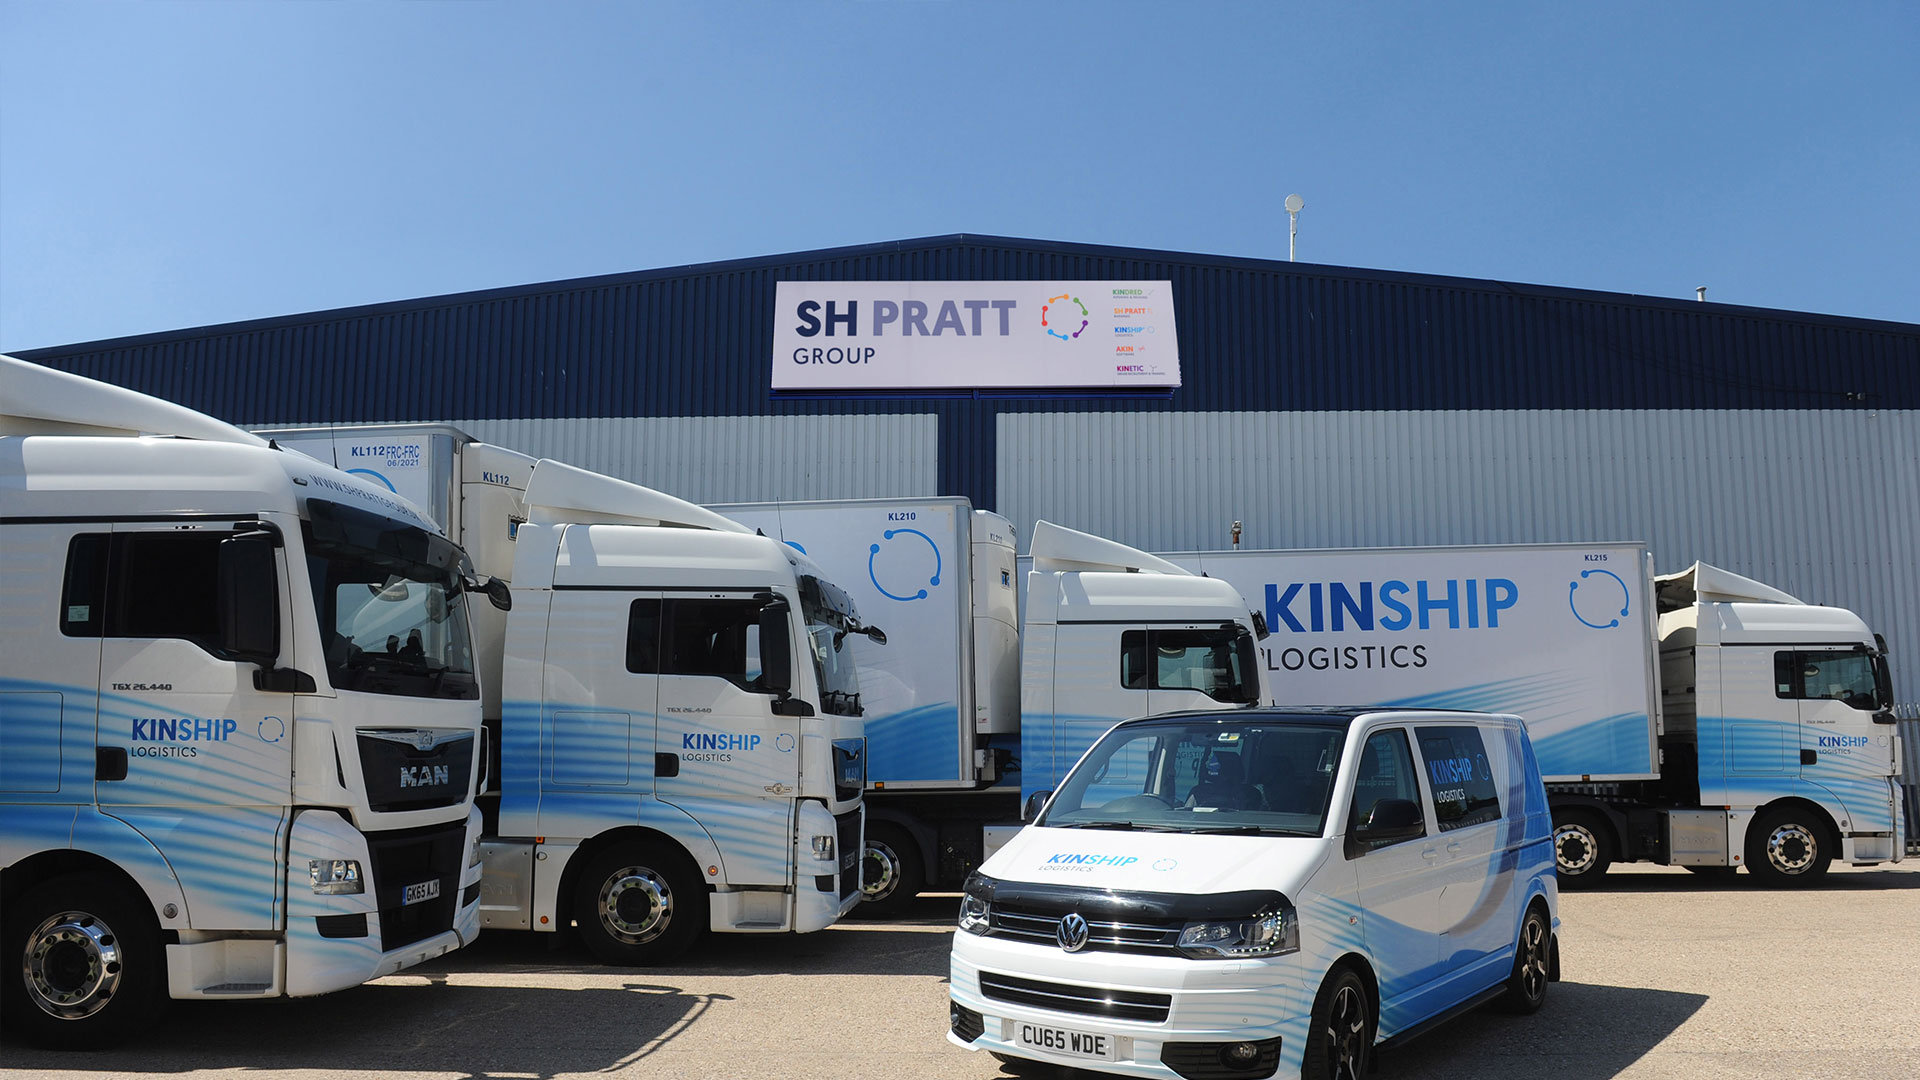 Kinship Logistic Lorries and van parked